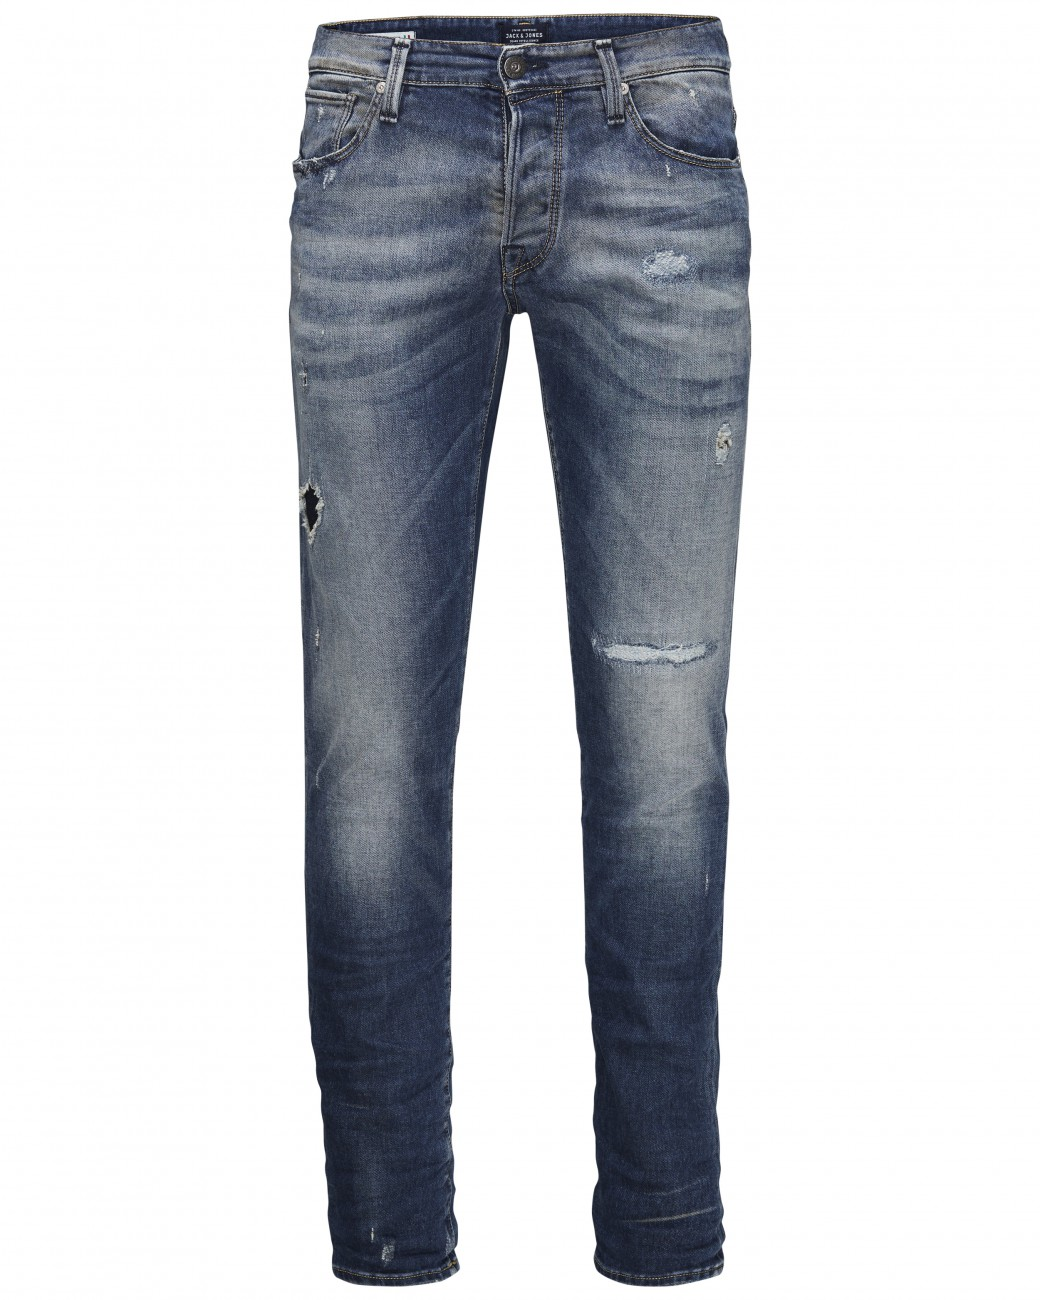 Jack & Jones Herren Jeans JJIGLENN JJICON BL 670 INDIGO KNIT - Slim Fit - Blau - Blue Denim